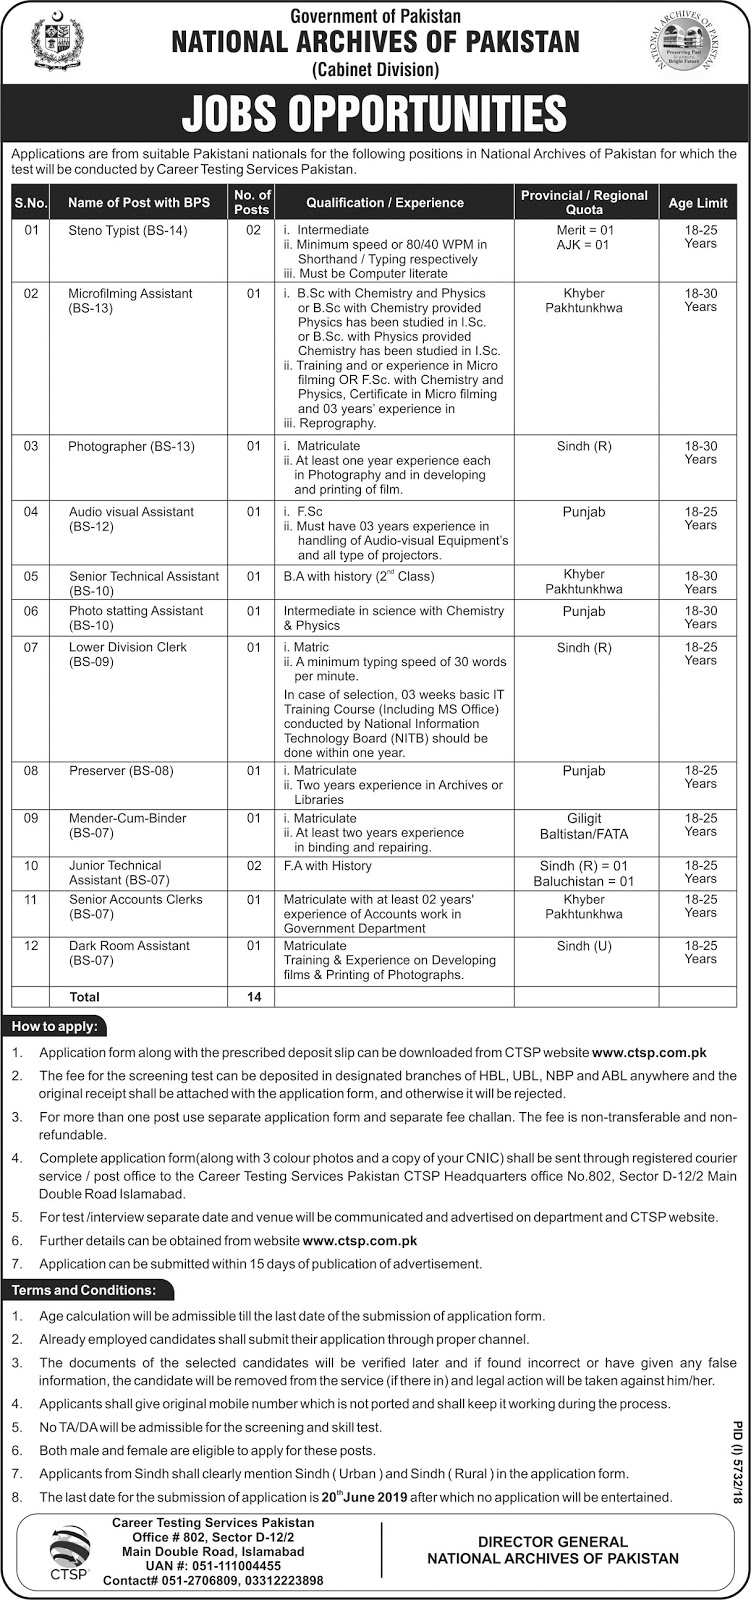 Government of Pakistan has Announced Jobs in National Archives May 2019